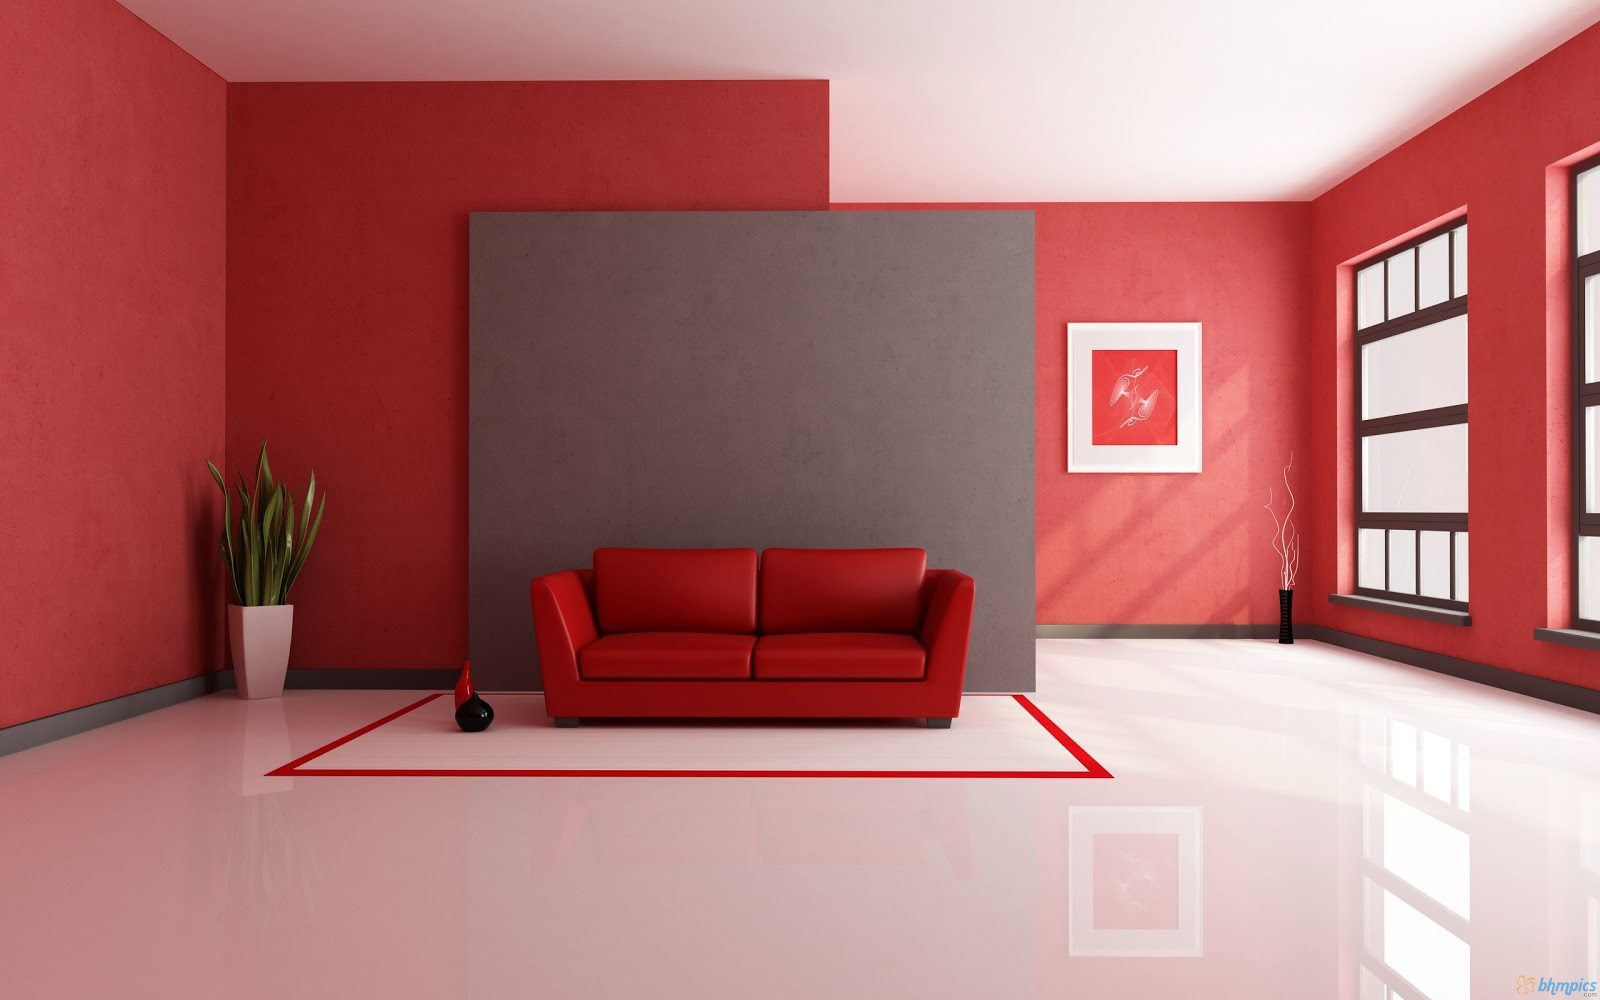 : Free Download Red Interior Design Wallpapers amp; Red Interior Design